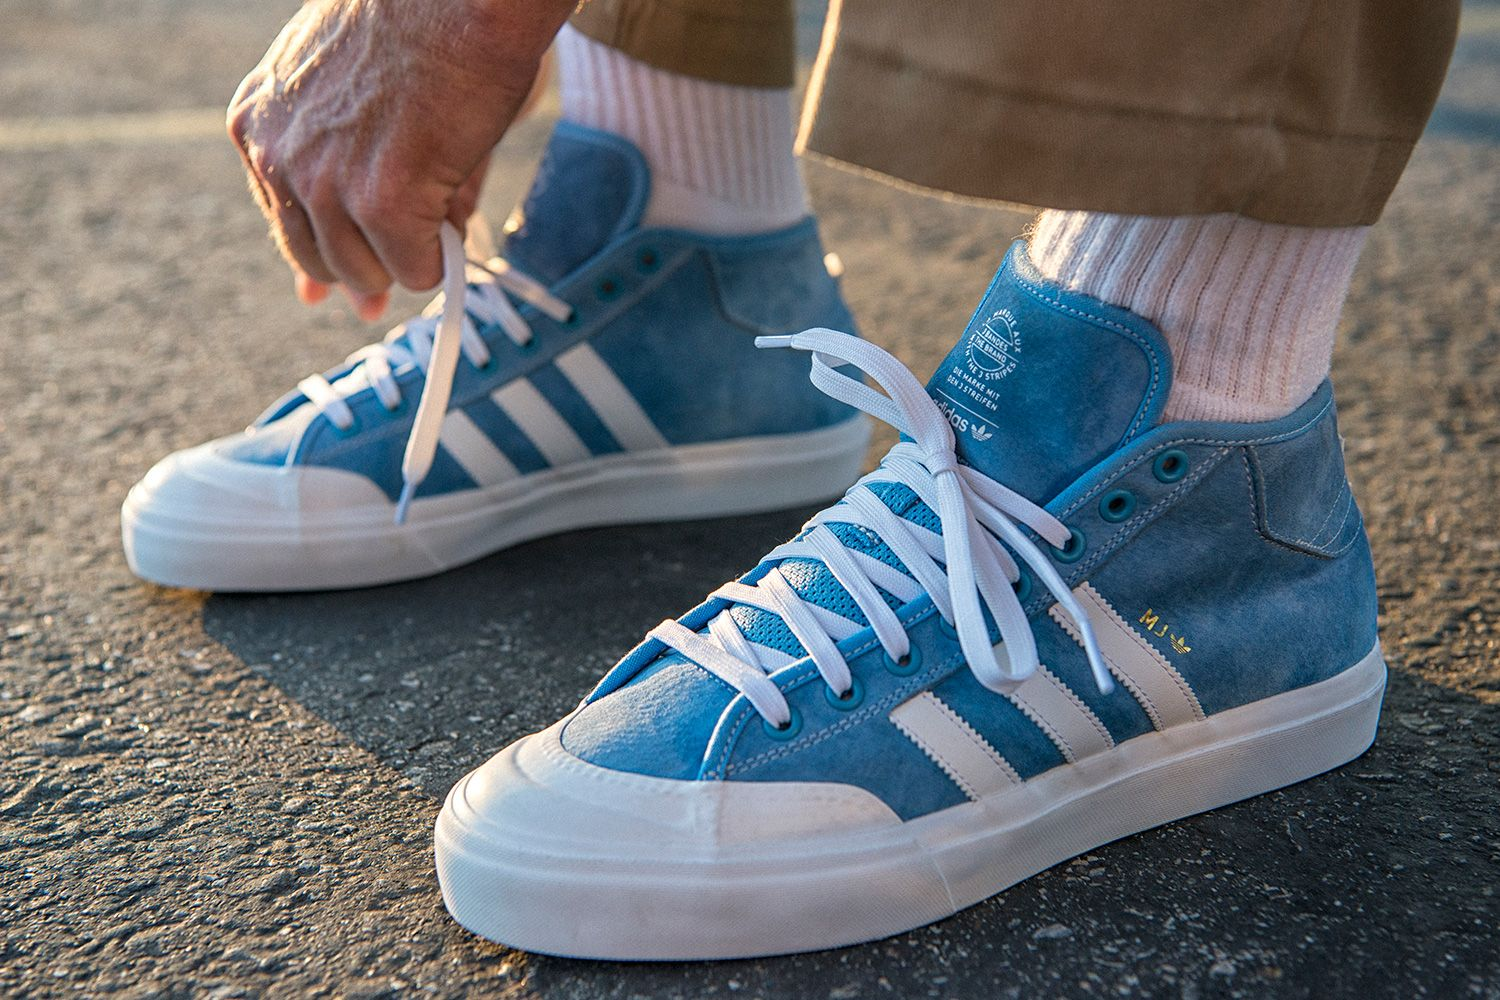 watch da276 0e0d2 Marc Johnson is treated with a special variation of the classic adidas  Matchcourt Mid as a Global Pro team rider for adidas Skateboarding.